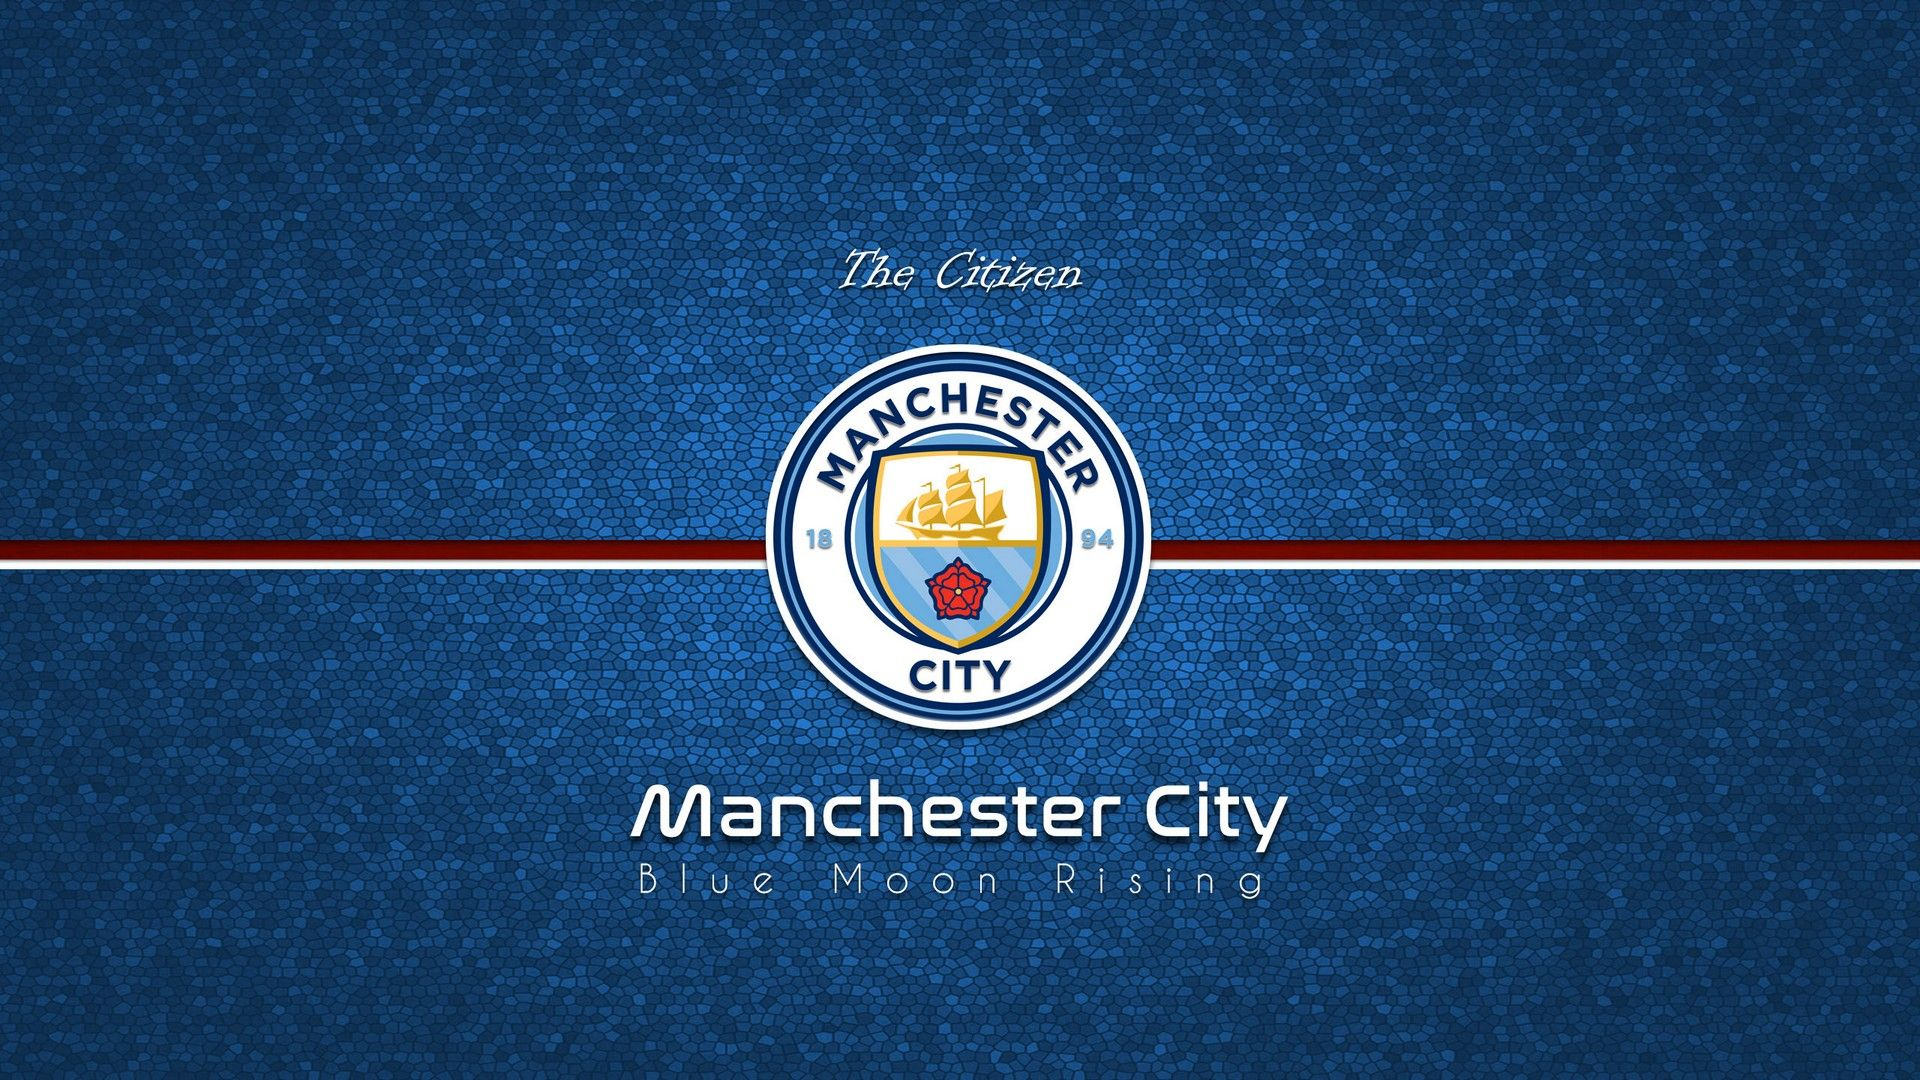 Manchester City Wallpaper Hd Best Football Wallpaper Hd Manchester City Wallpaper Manchester City City Wallpaper